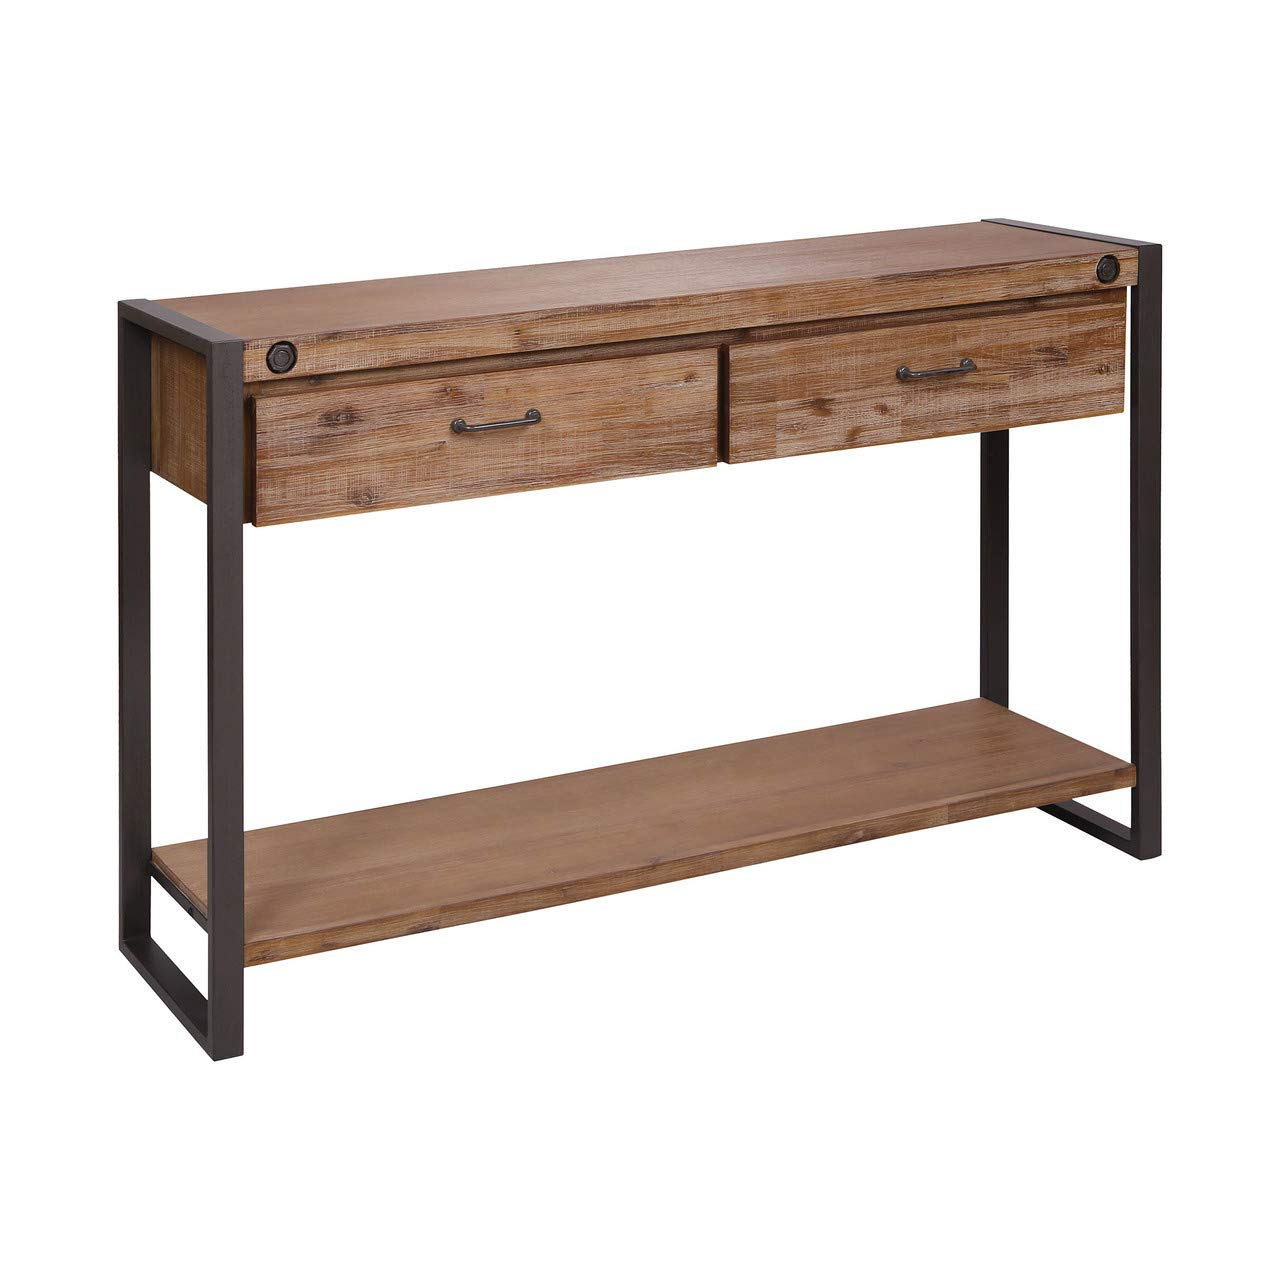 Stein World 2-Drawer Console Table in Brown Finish